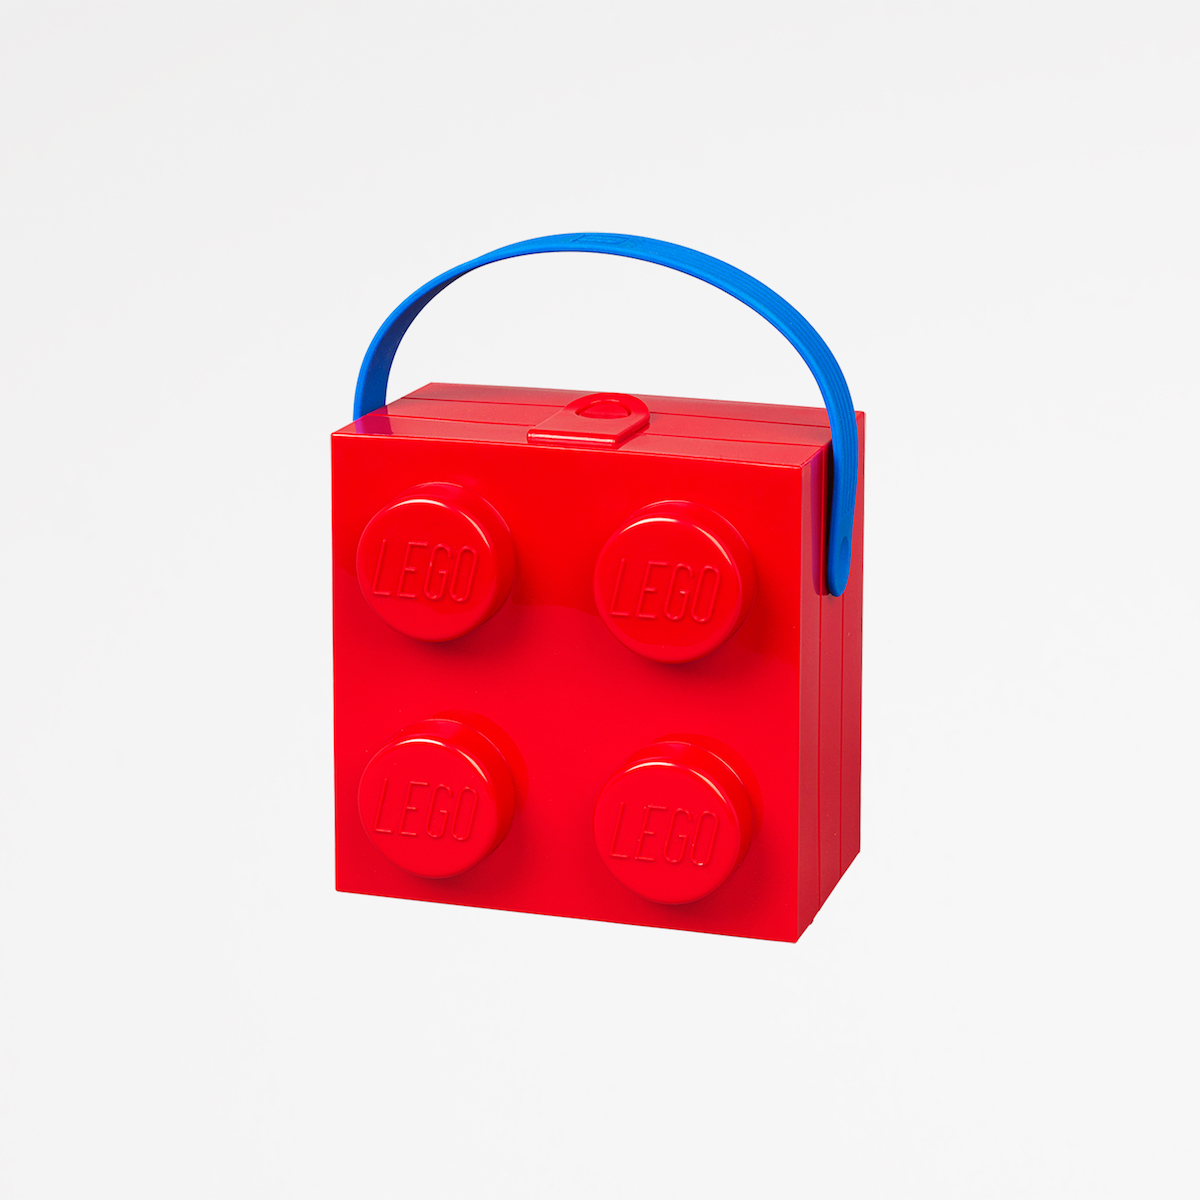 Lego box with handle, 2by2, plastic, organise, kid, lunch, red